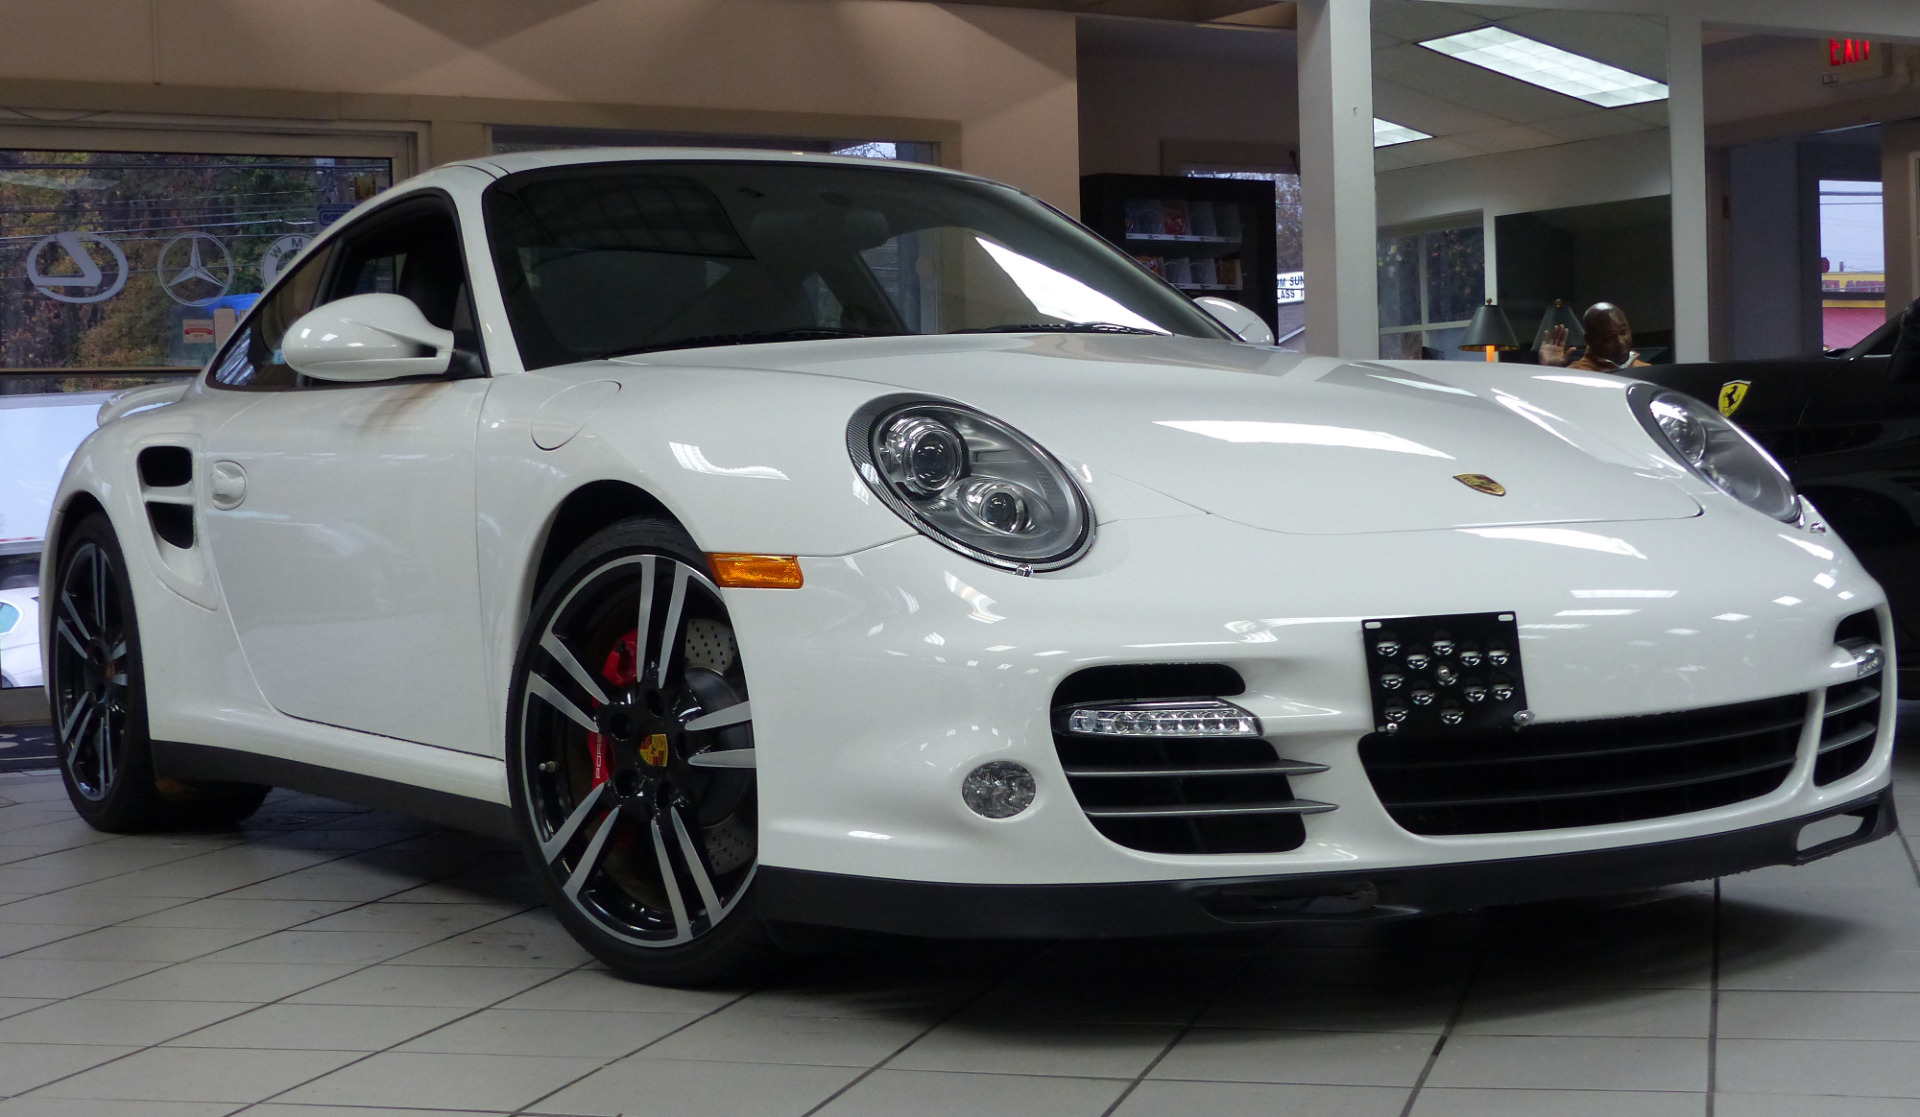 used 2011 porsche 911 turbo marietta ga. Black Bedroom Furniture Sets. Home Design Ideas